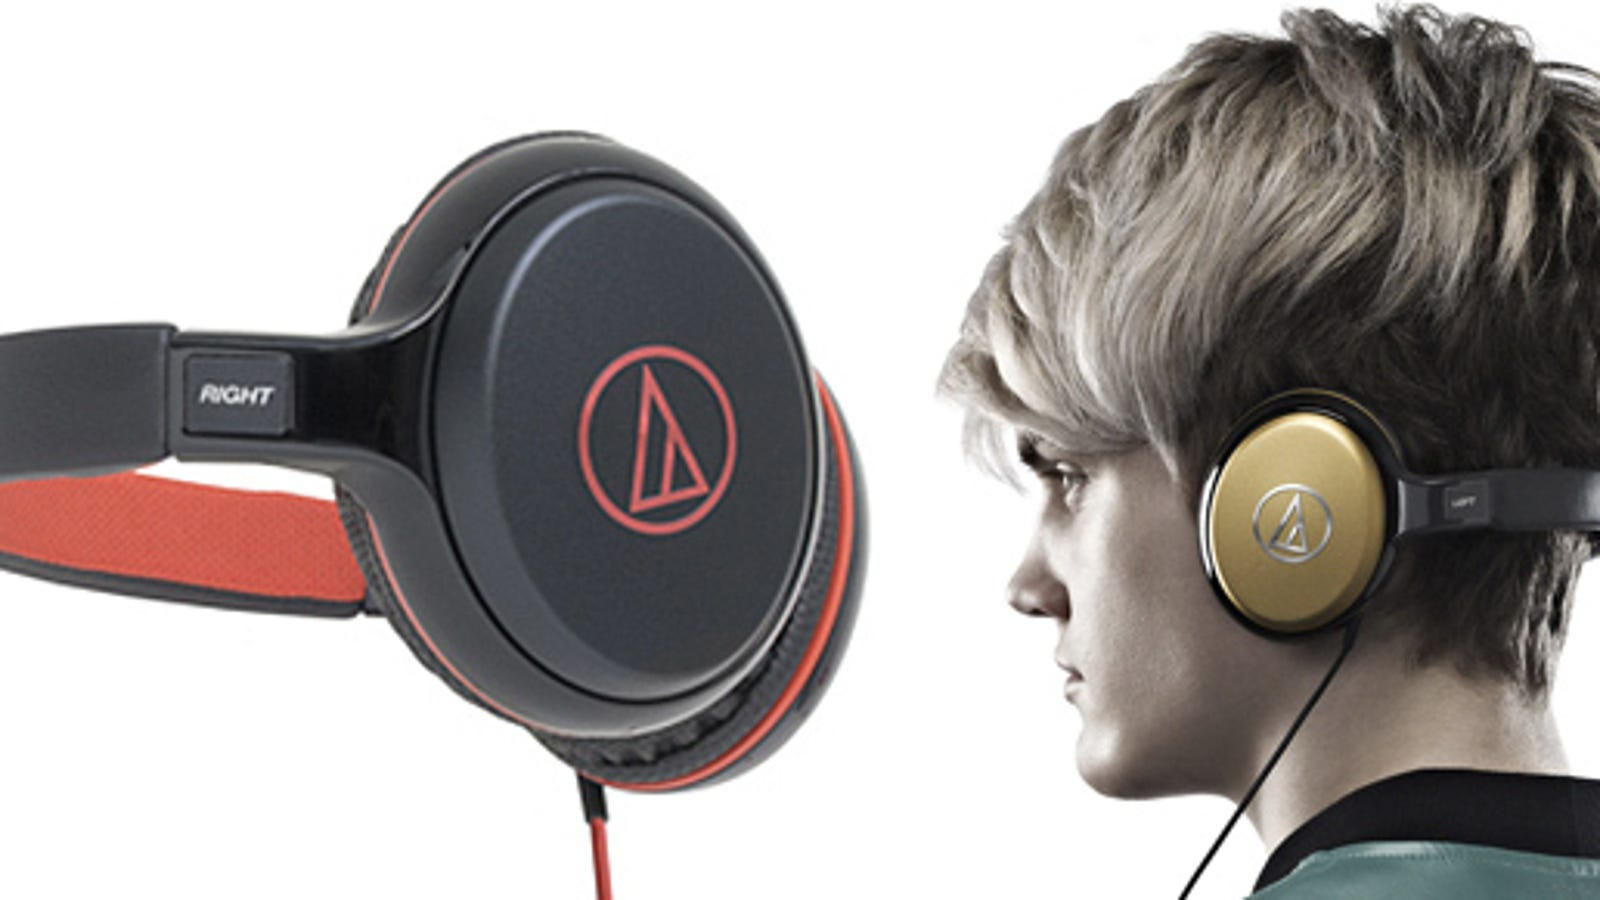 headphone organizer wrapper - Over-Ear Headphones That Wrap Behind Your Head To Preserve Your 'Do